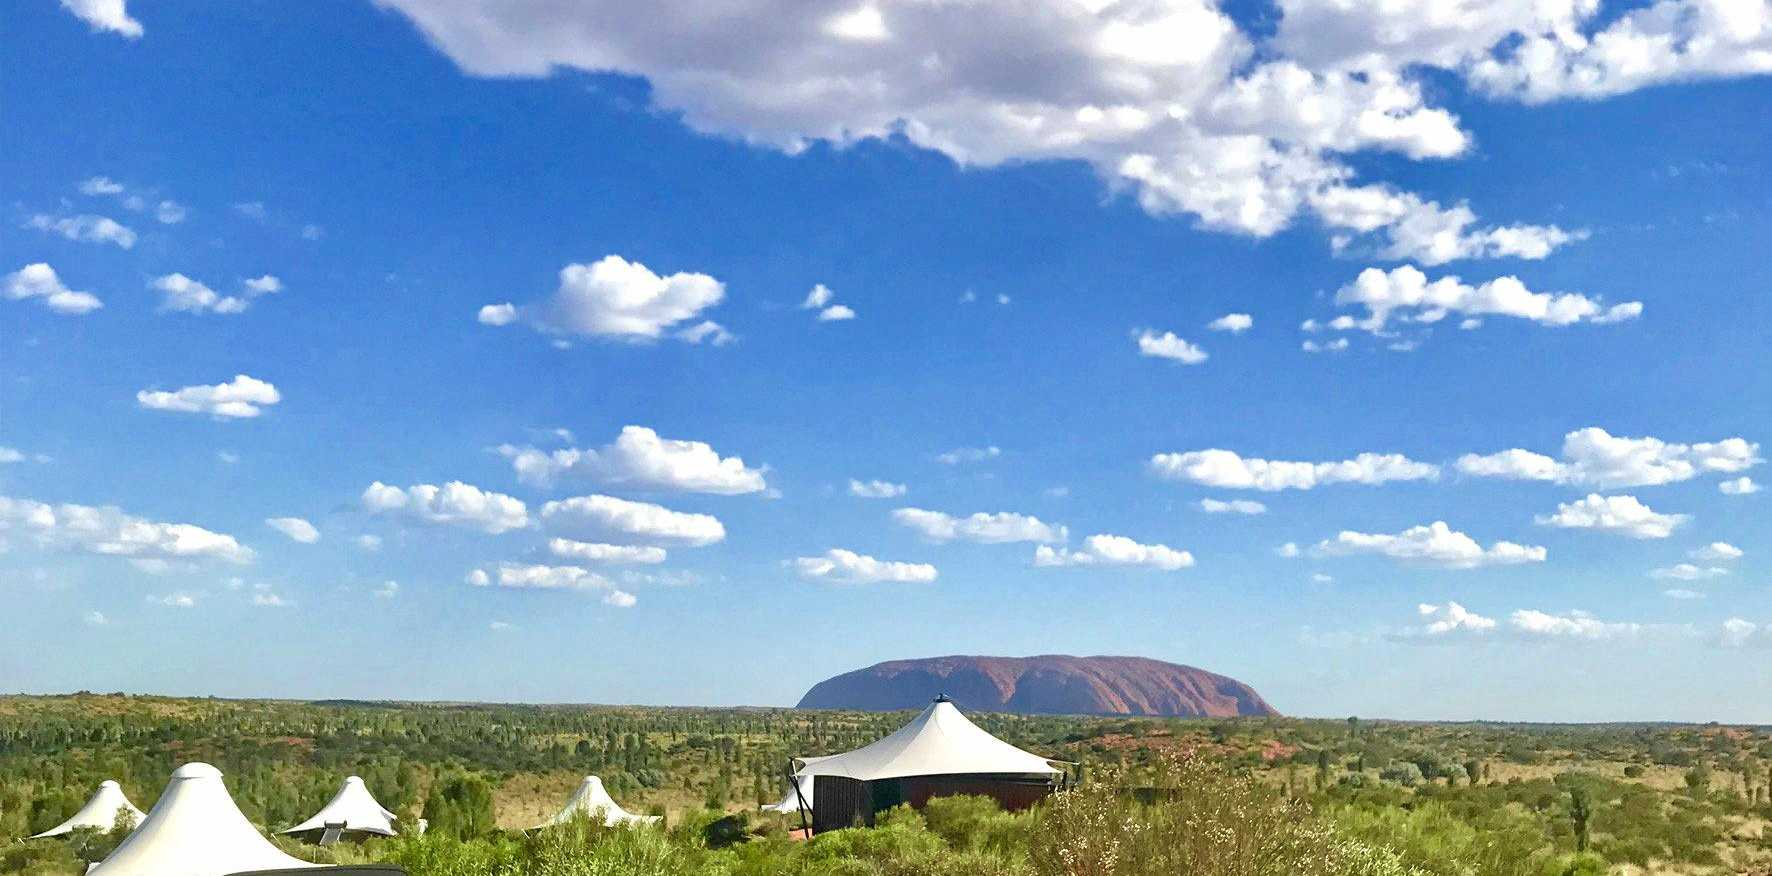 IMPRESSIVE OUTLOOK: The author enjoying the elevated Dune Pavilion plunge pool and sun deck overlooking Uluru.